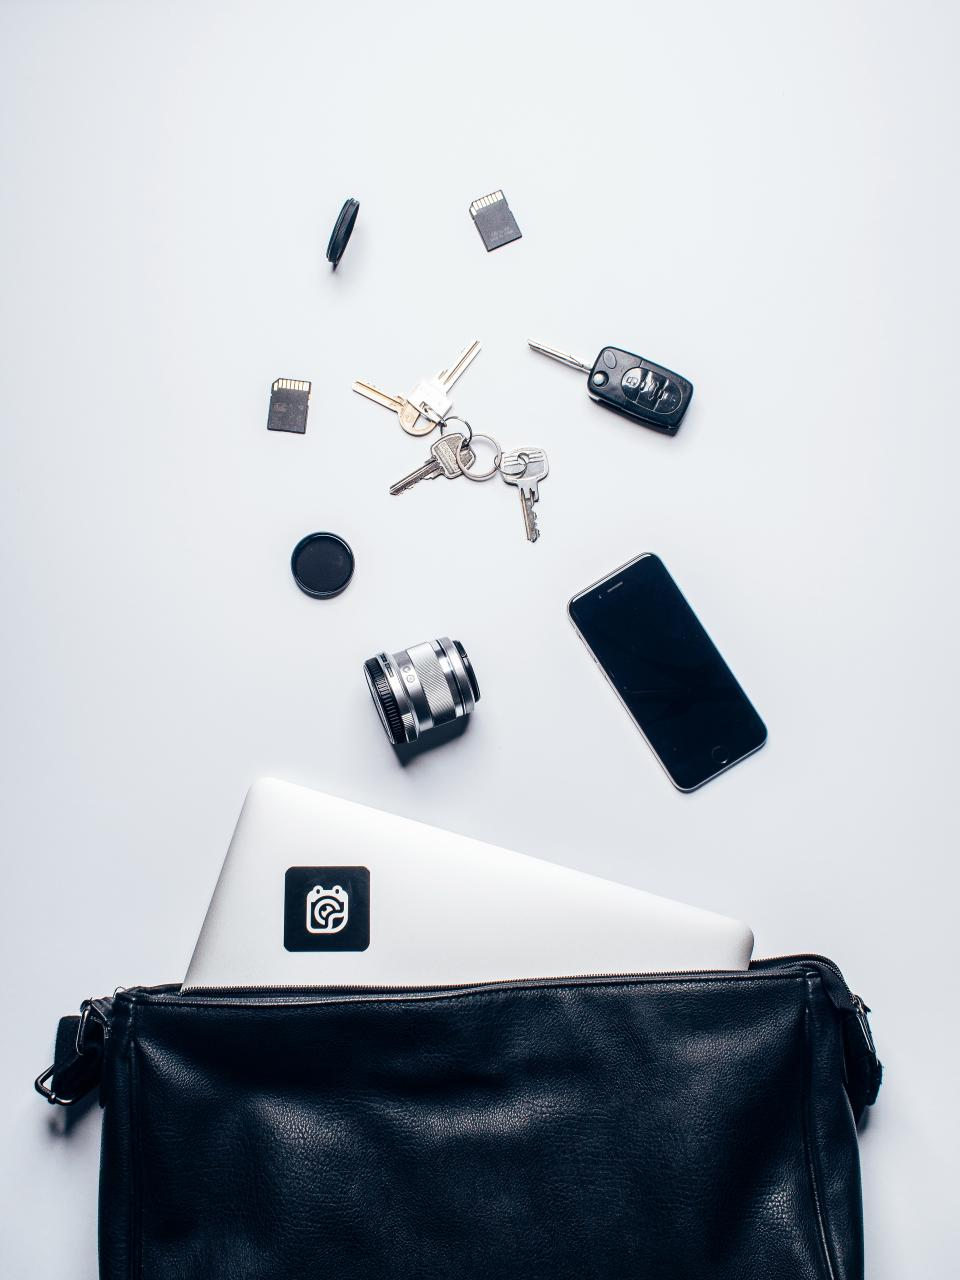 Free stock photo of leather bag